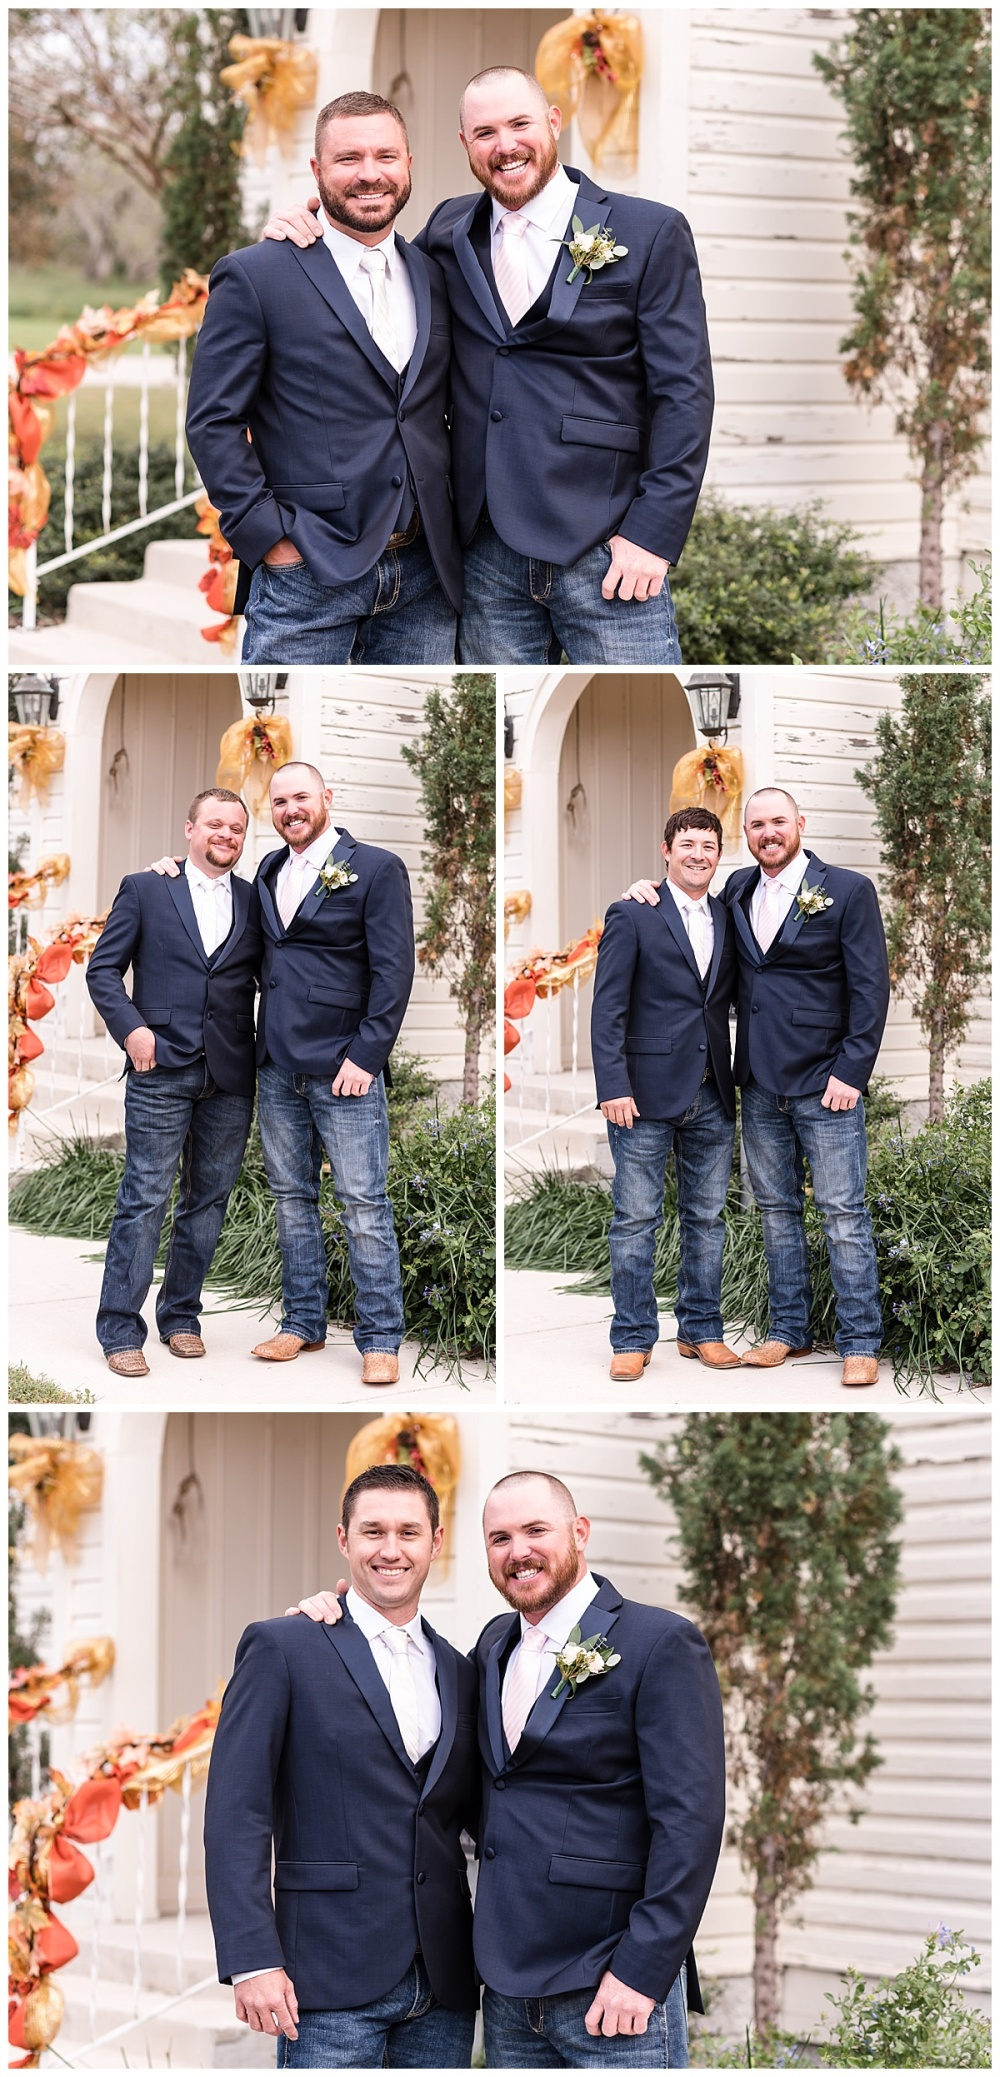 South-Texas-Wedding-Photographer-Rose-Gold-and-Navy-Theme-LaVernia-Bride-Groom-Carly-Barton-Photography_0012